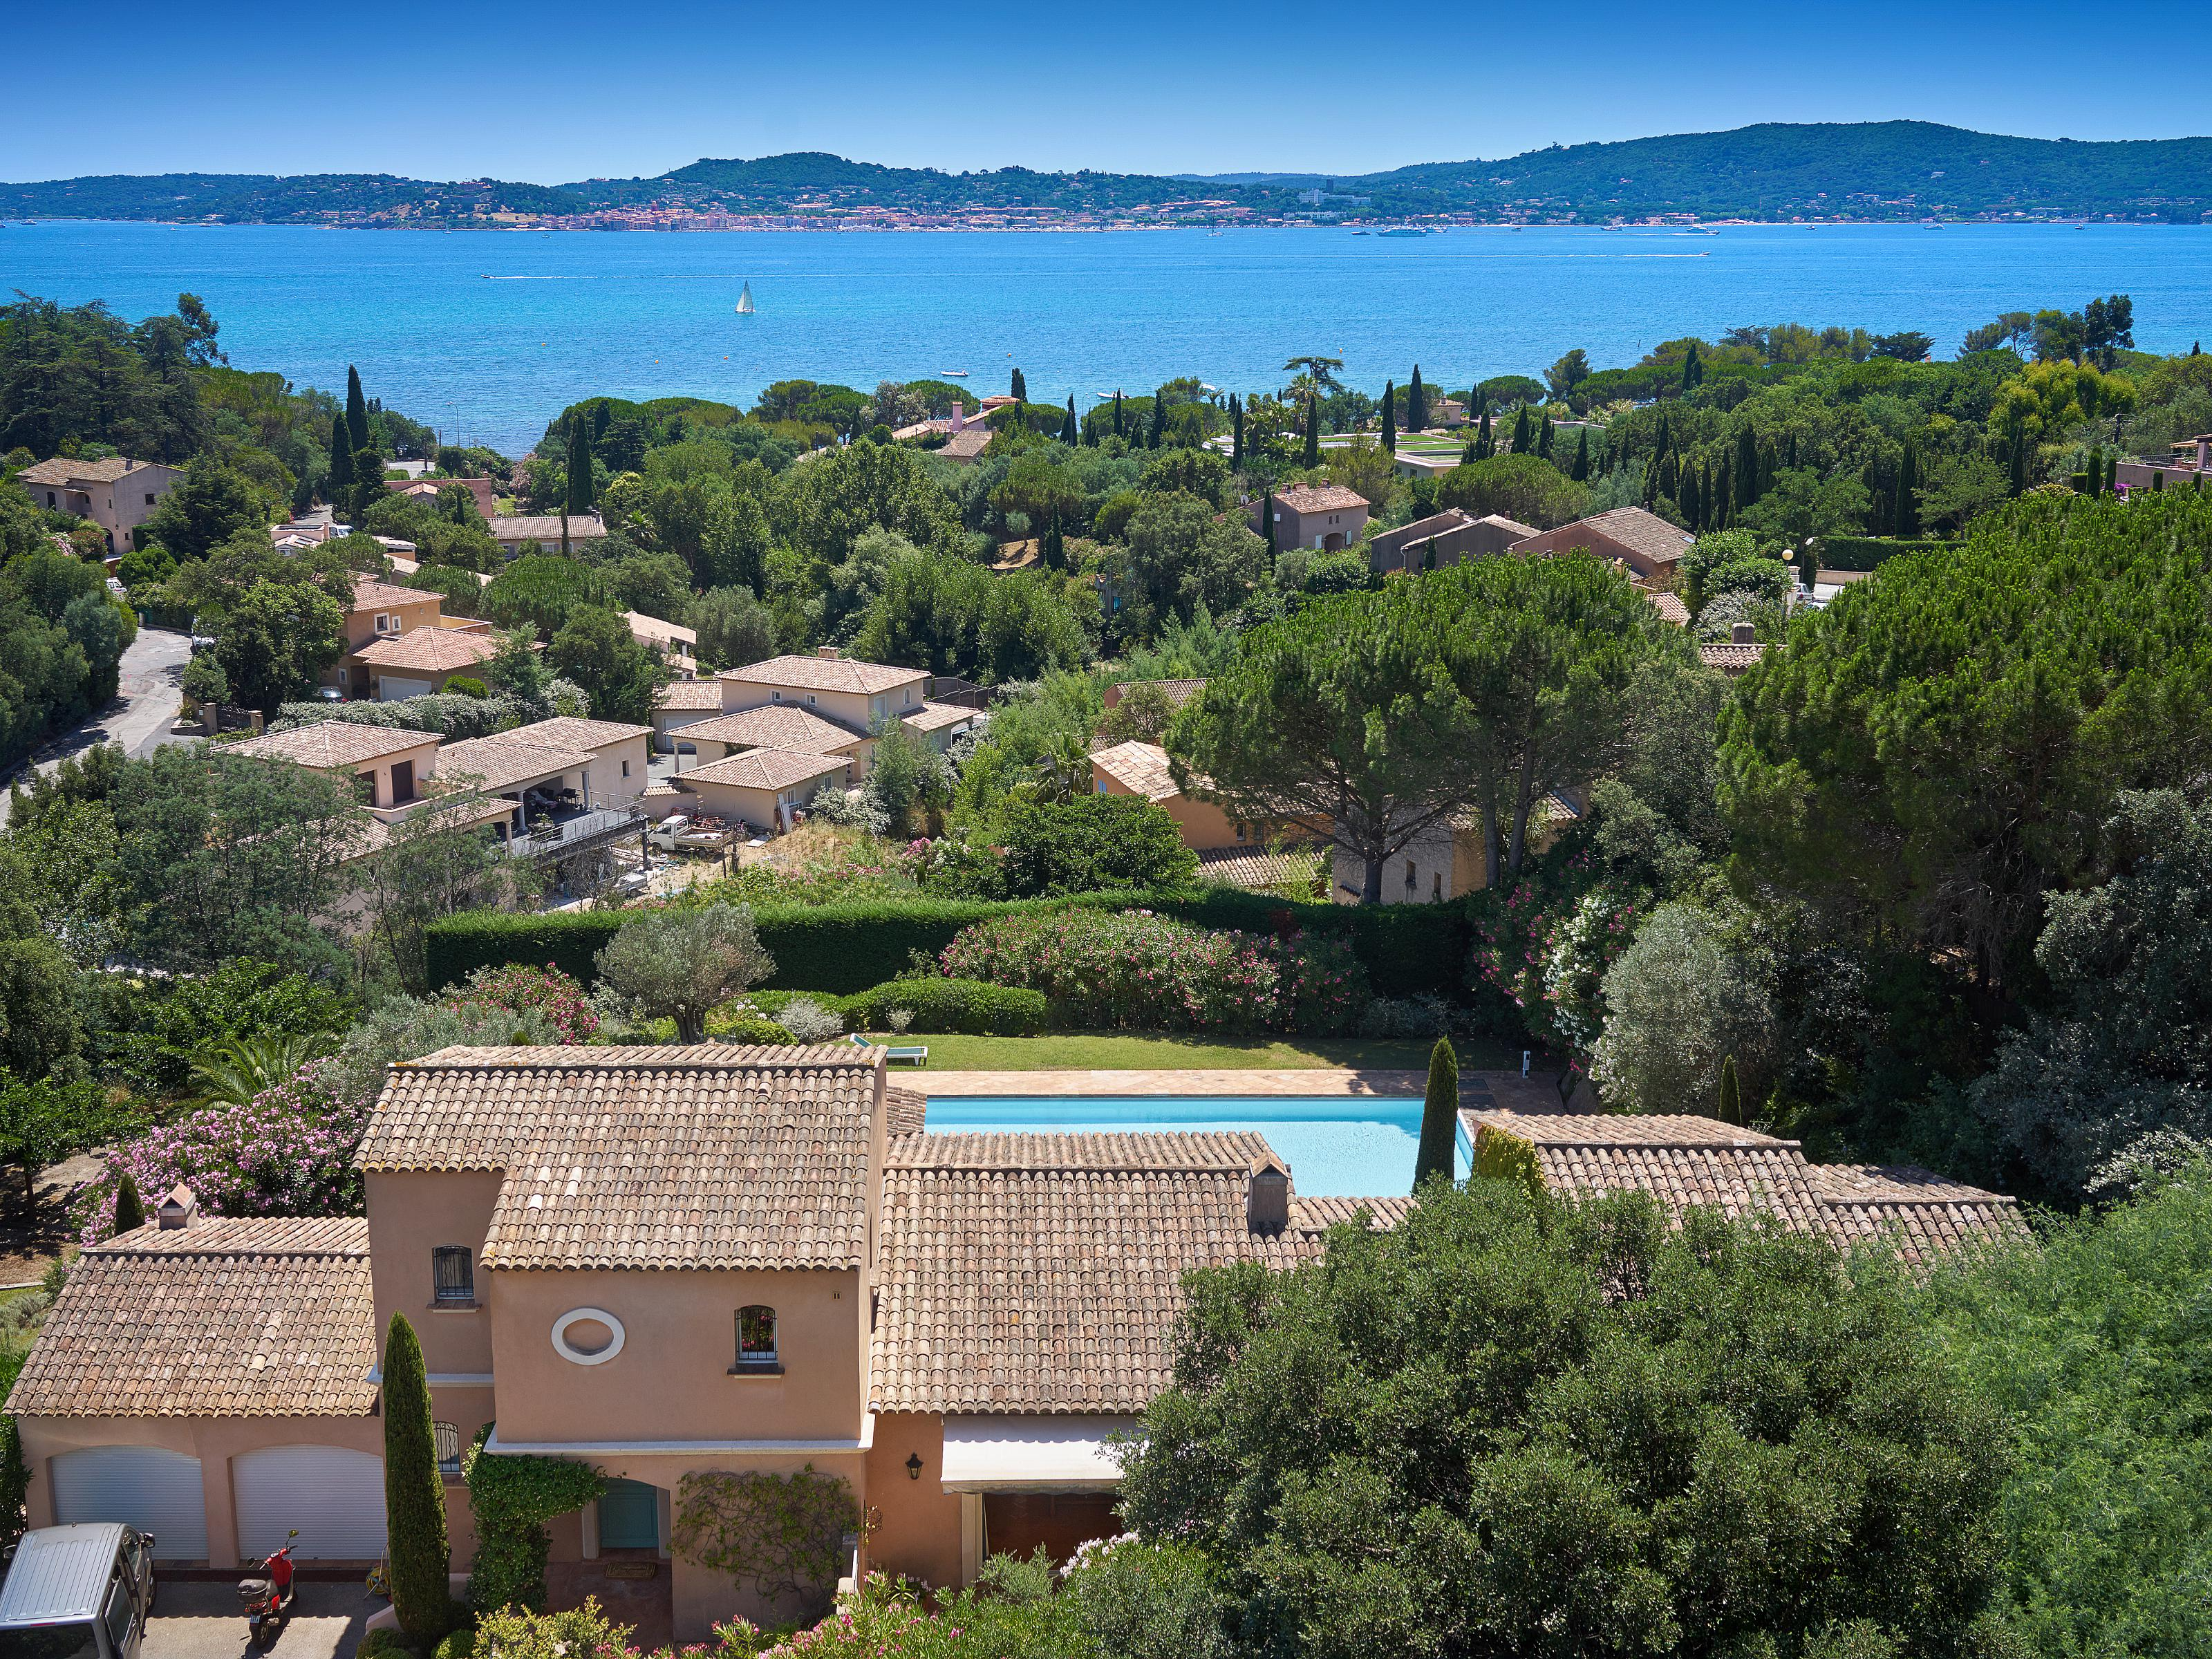 Single Family Home for Sale at Splendid provencal style house with astounding views over the golfe of St Tropez Saint Maxime Other Provence-Alpes-Cote D'Azur, Provence-Alpes-Cote D'Azur 83120 France